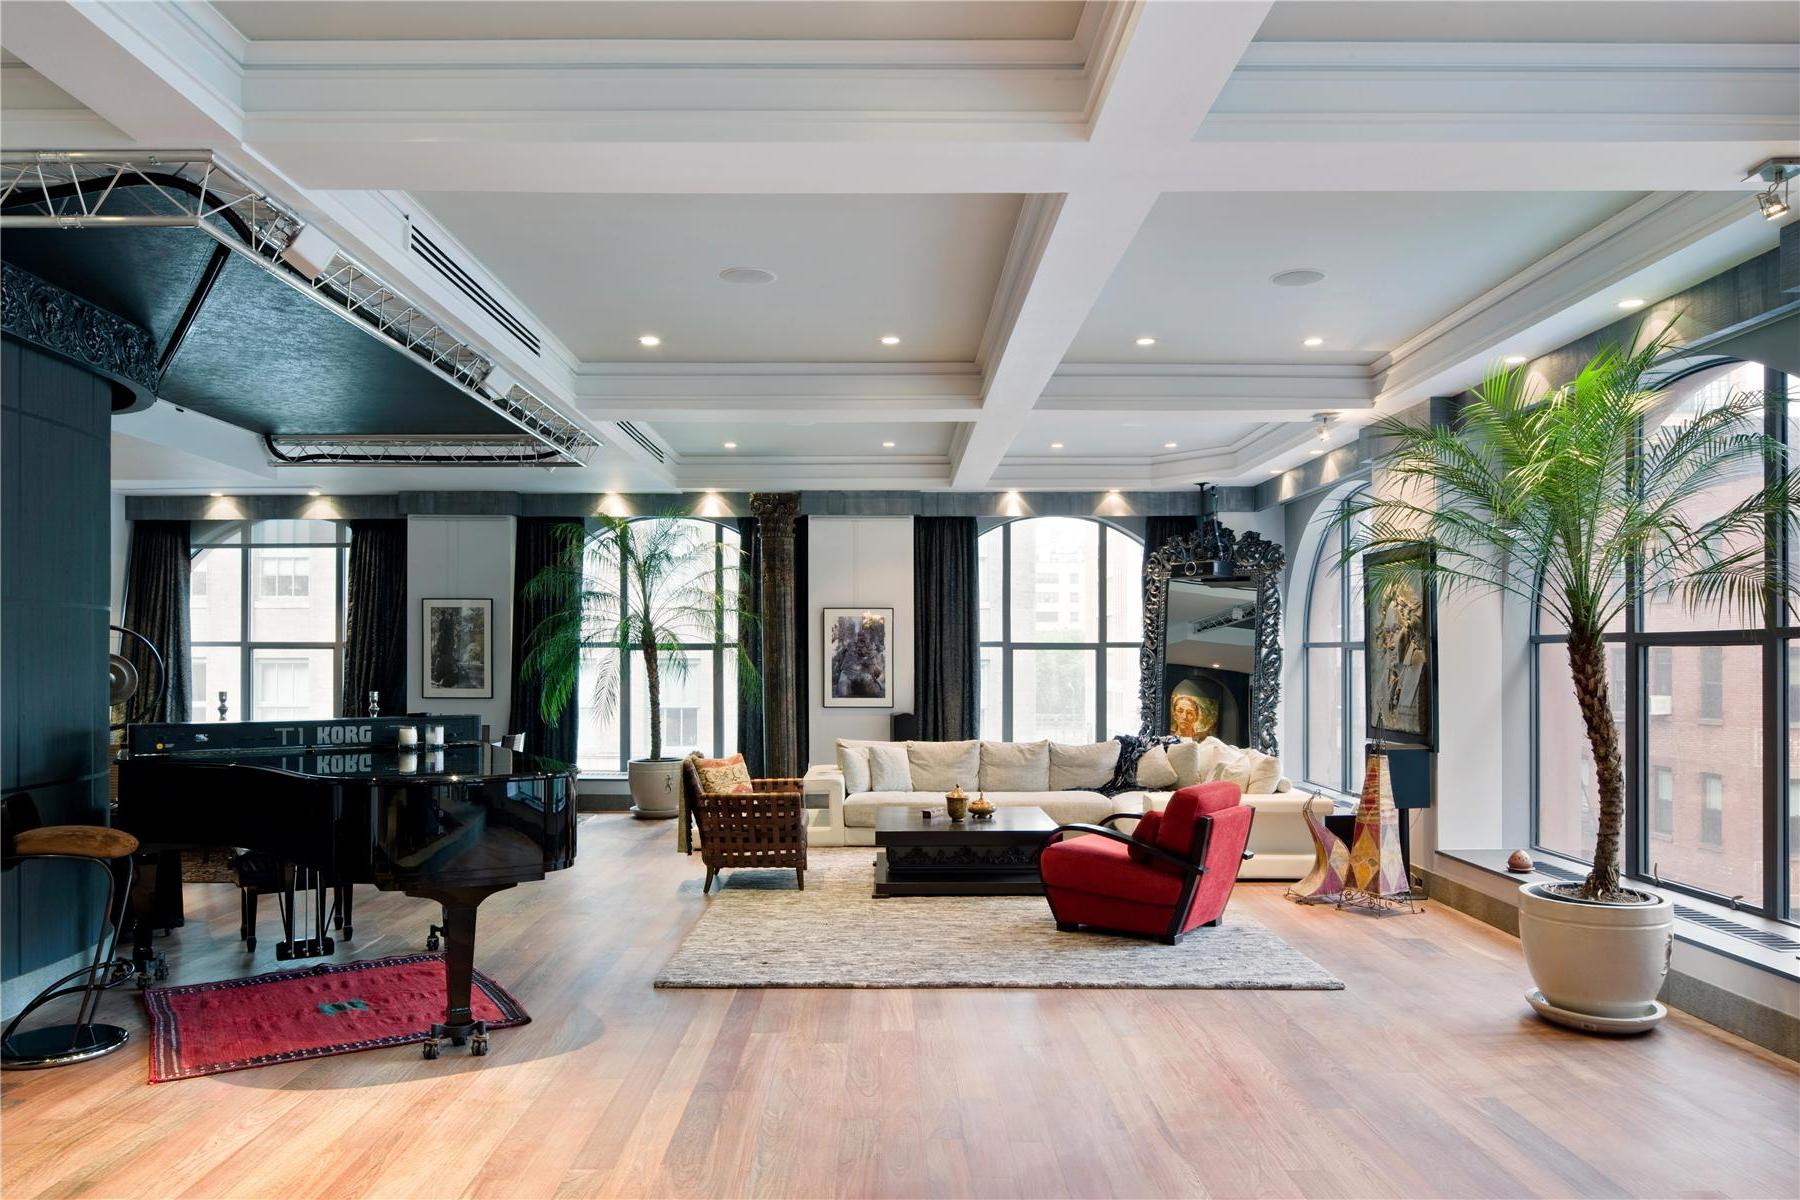 Two luxurious lofts on sale in tribeca new york 3 for Apartments in tribeca nyc